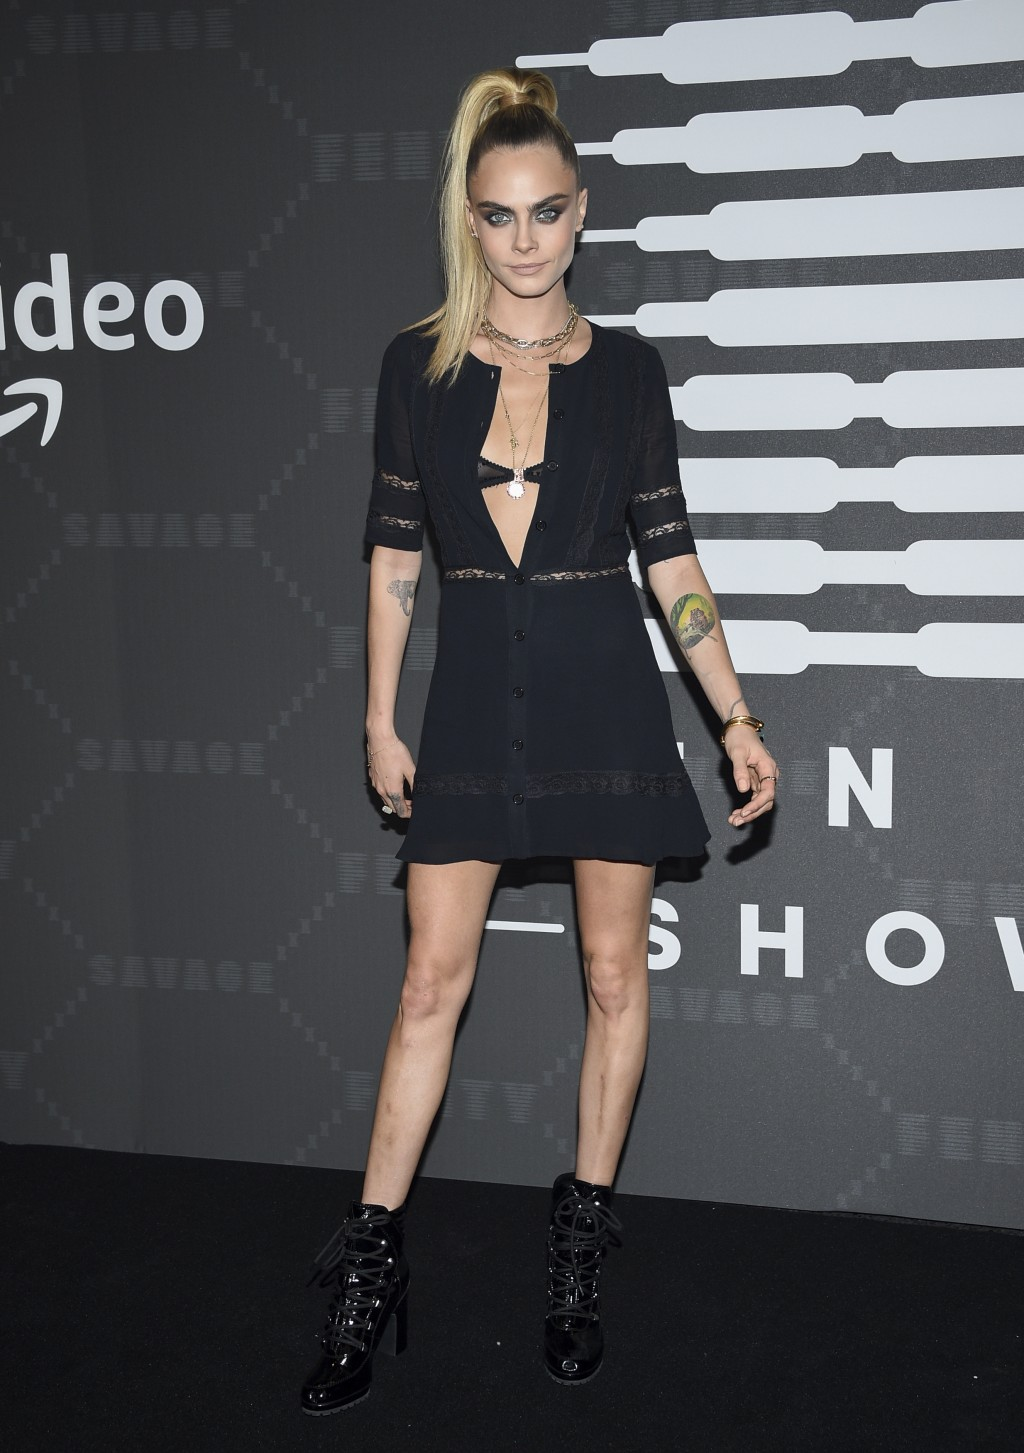 Actress Cara Delevingne attends the Spring/Summer 2020 Savage X Fenty show, presented by Amazon Prime, at the Barclays Center on Tuesday, Sept, 10, 20